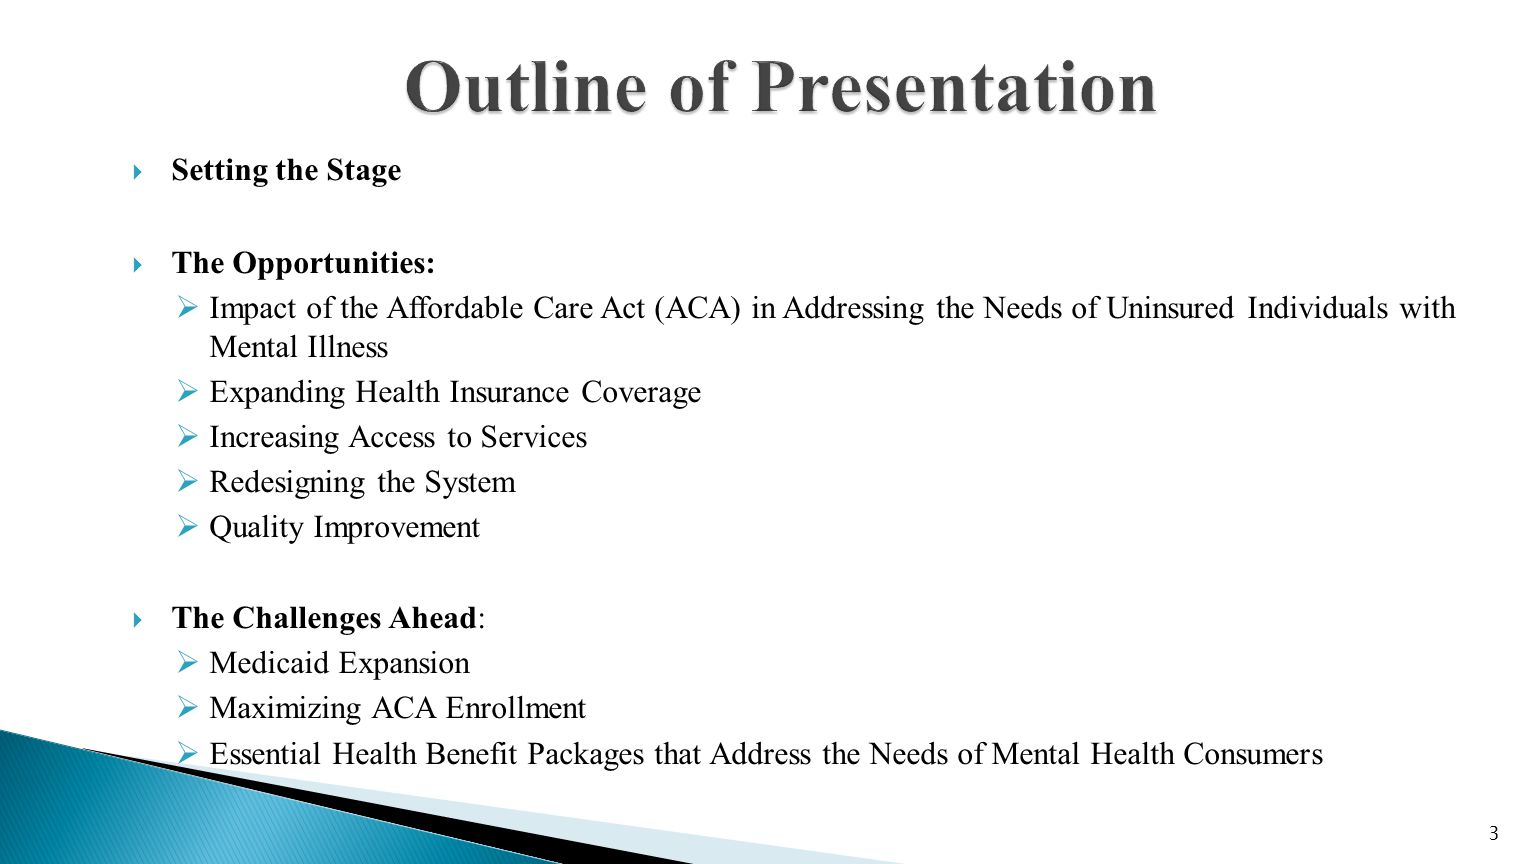 There are several reasons why ACA has made reinventing and improving mental health more likely:  First, ACA provisions will enable states and federal agencies to test and evaluate improved financial and organizational tools in order to address the fragmentation of mental health services that lead to poor quality and high cost.